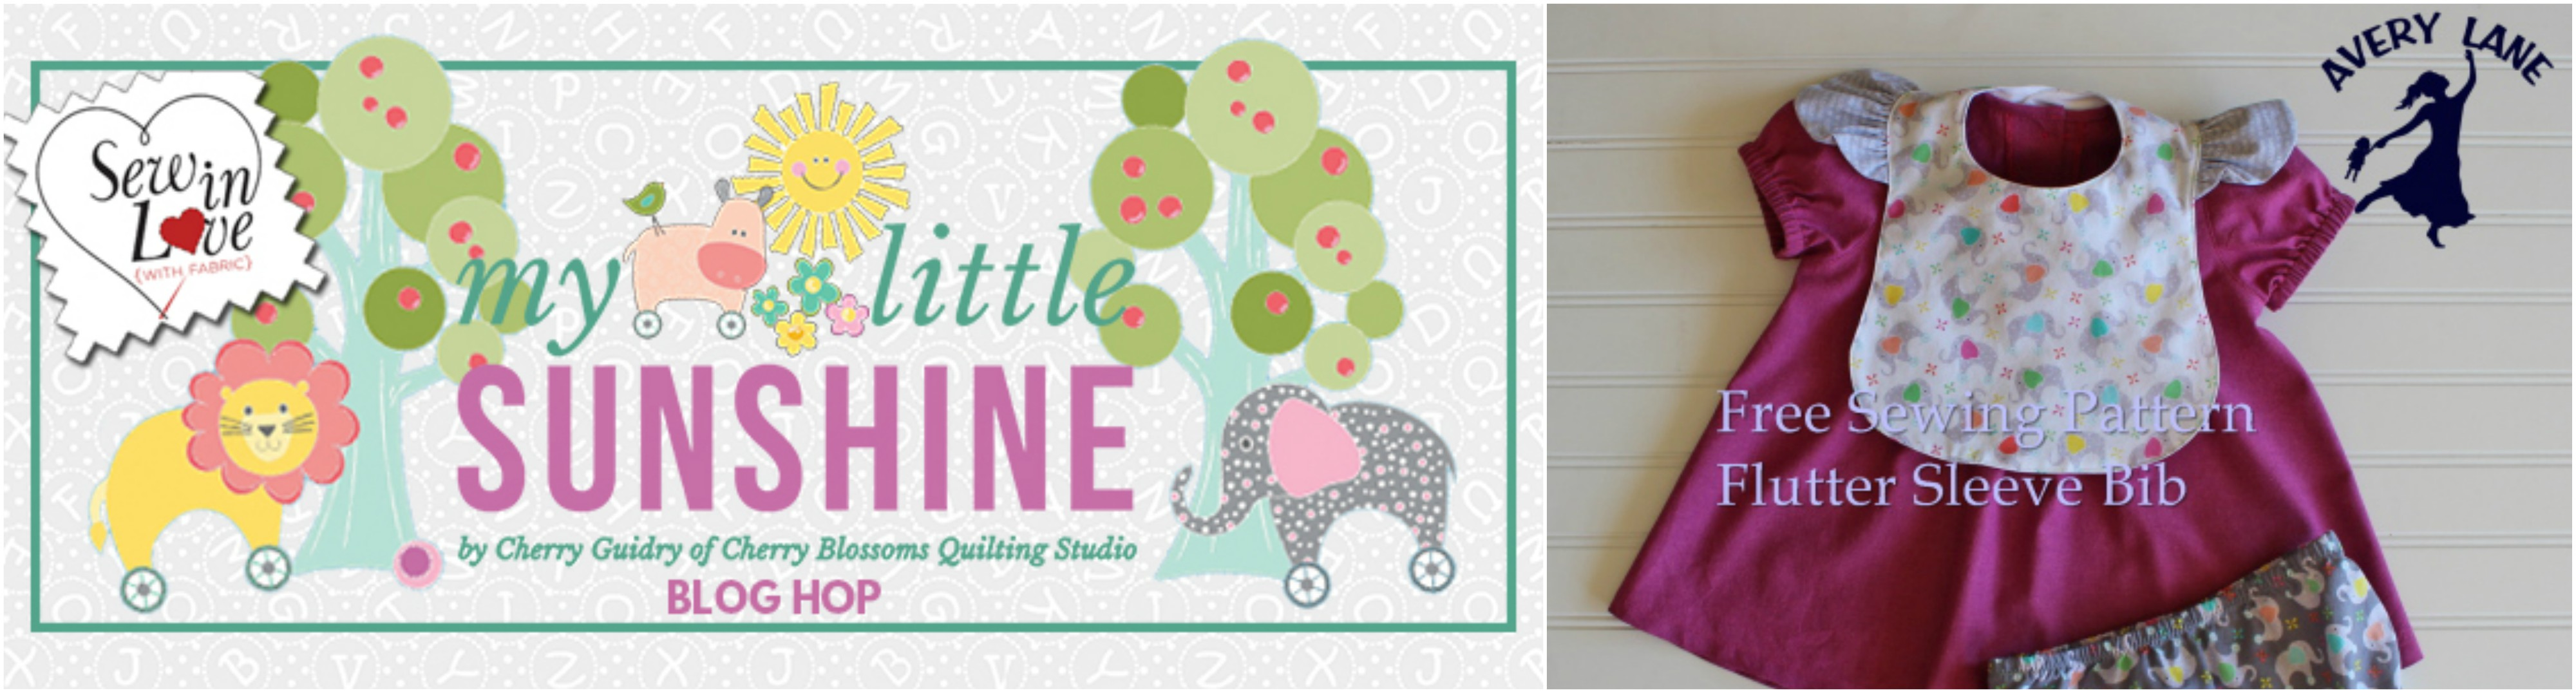 DIY Baby Shower Gift Set: Free Sewing Pattern Flutter Sleeve Bib and